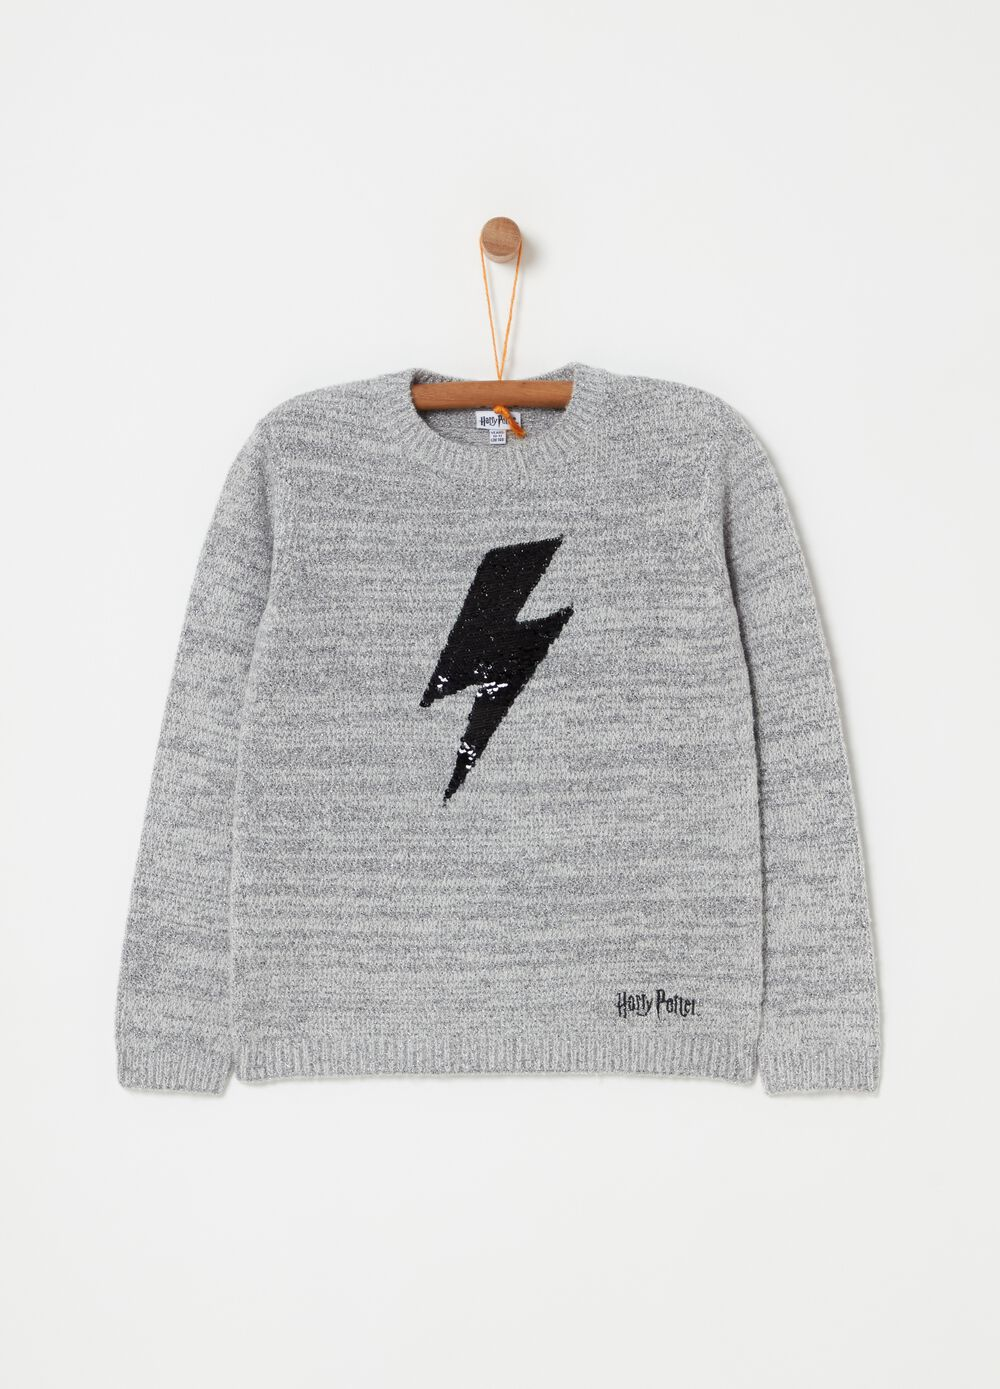 Pullover con lurex stampa Harry Potter